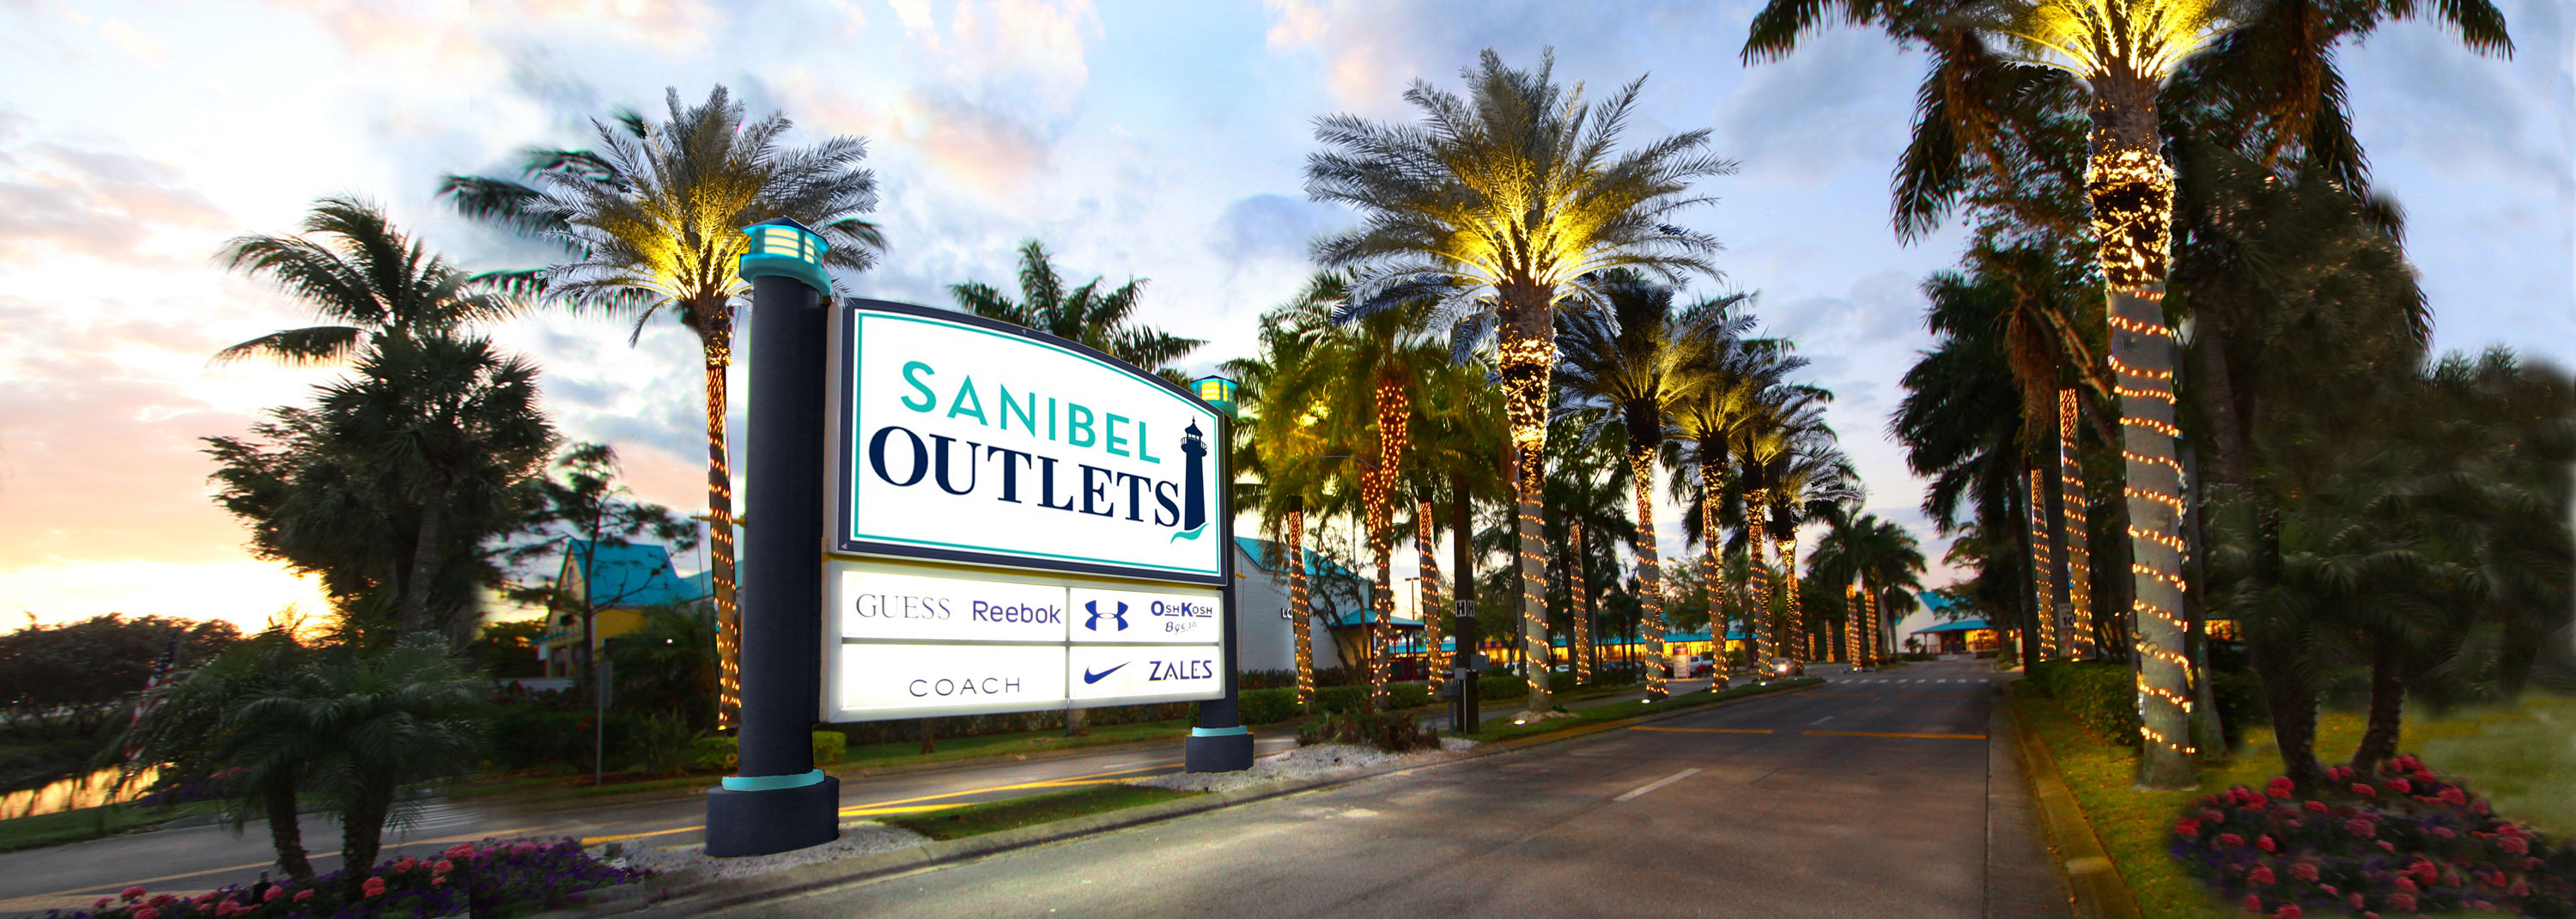 sanibel-outlets